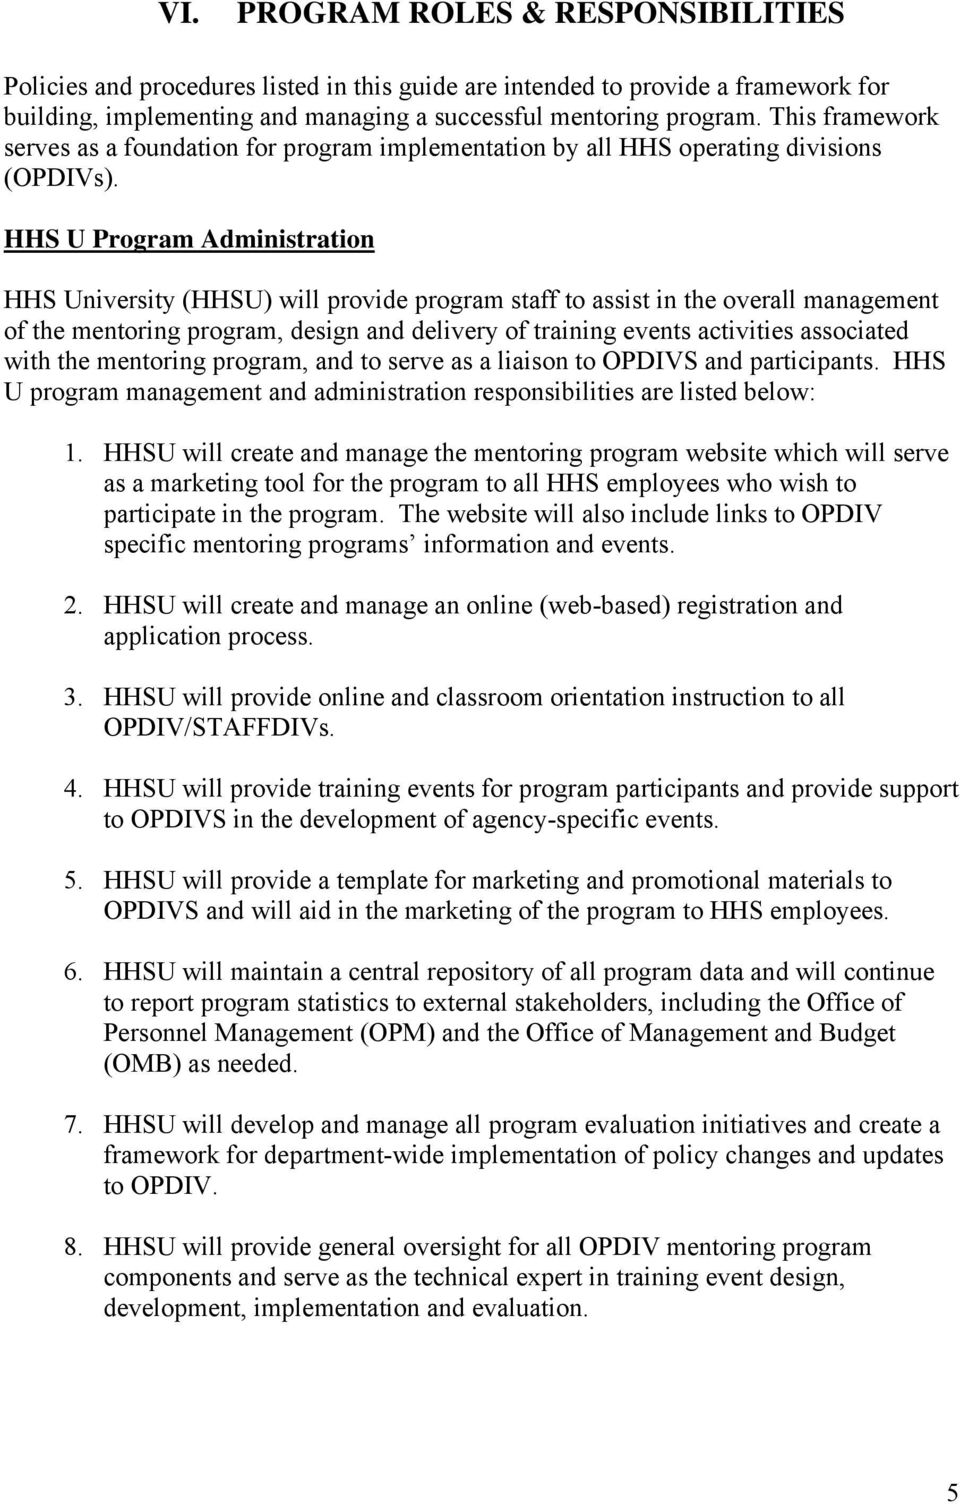 HHS U Program Administration HHS University (HHSU) will provide program staff to assist in the overall management of the mentoring program, design and delivery of training events activities